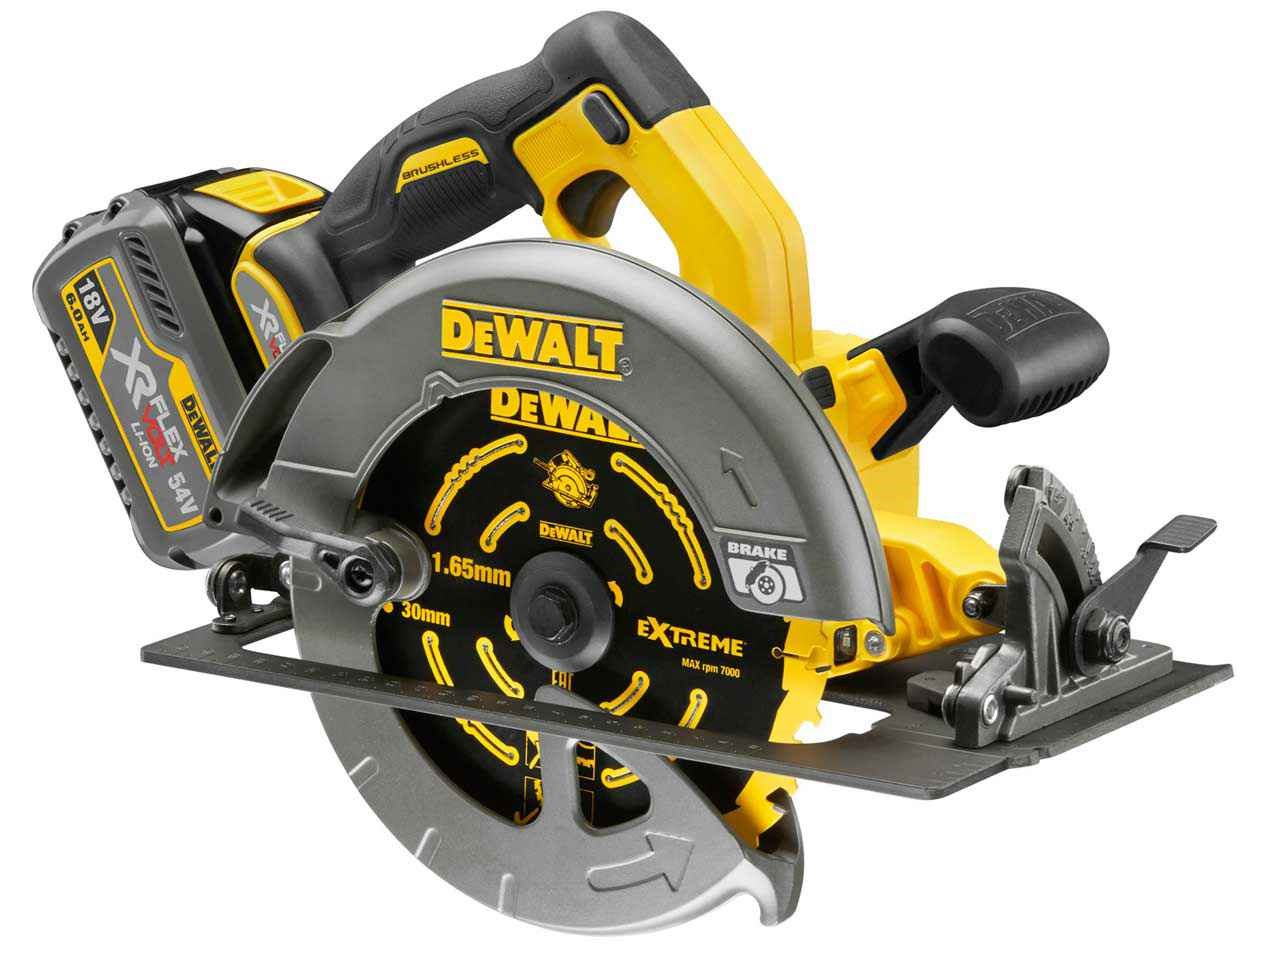 Dewalt dcs575t2 54v xr 2x60ah li ion flexvolt 190mm circular saw keyboard keysfo